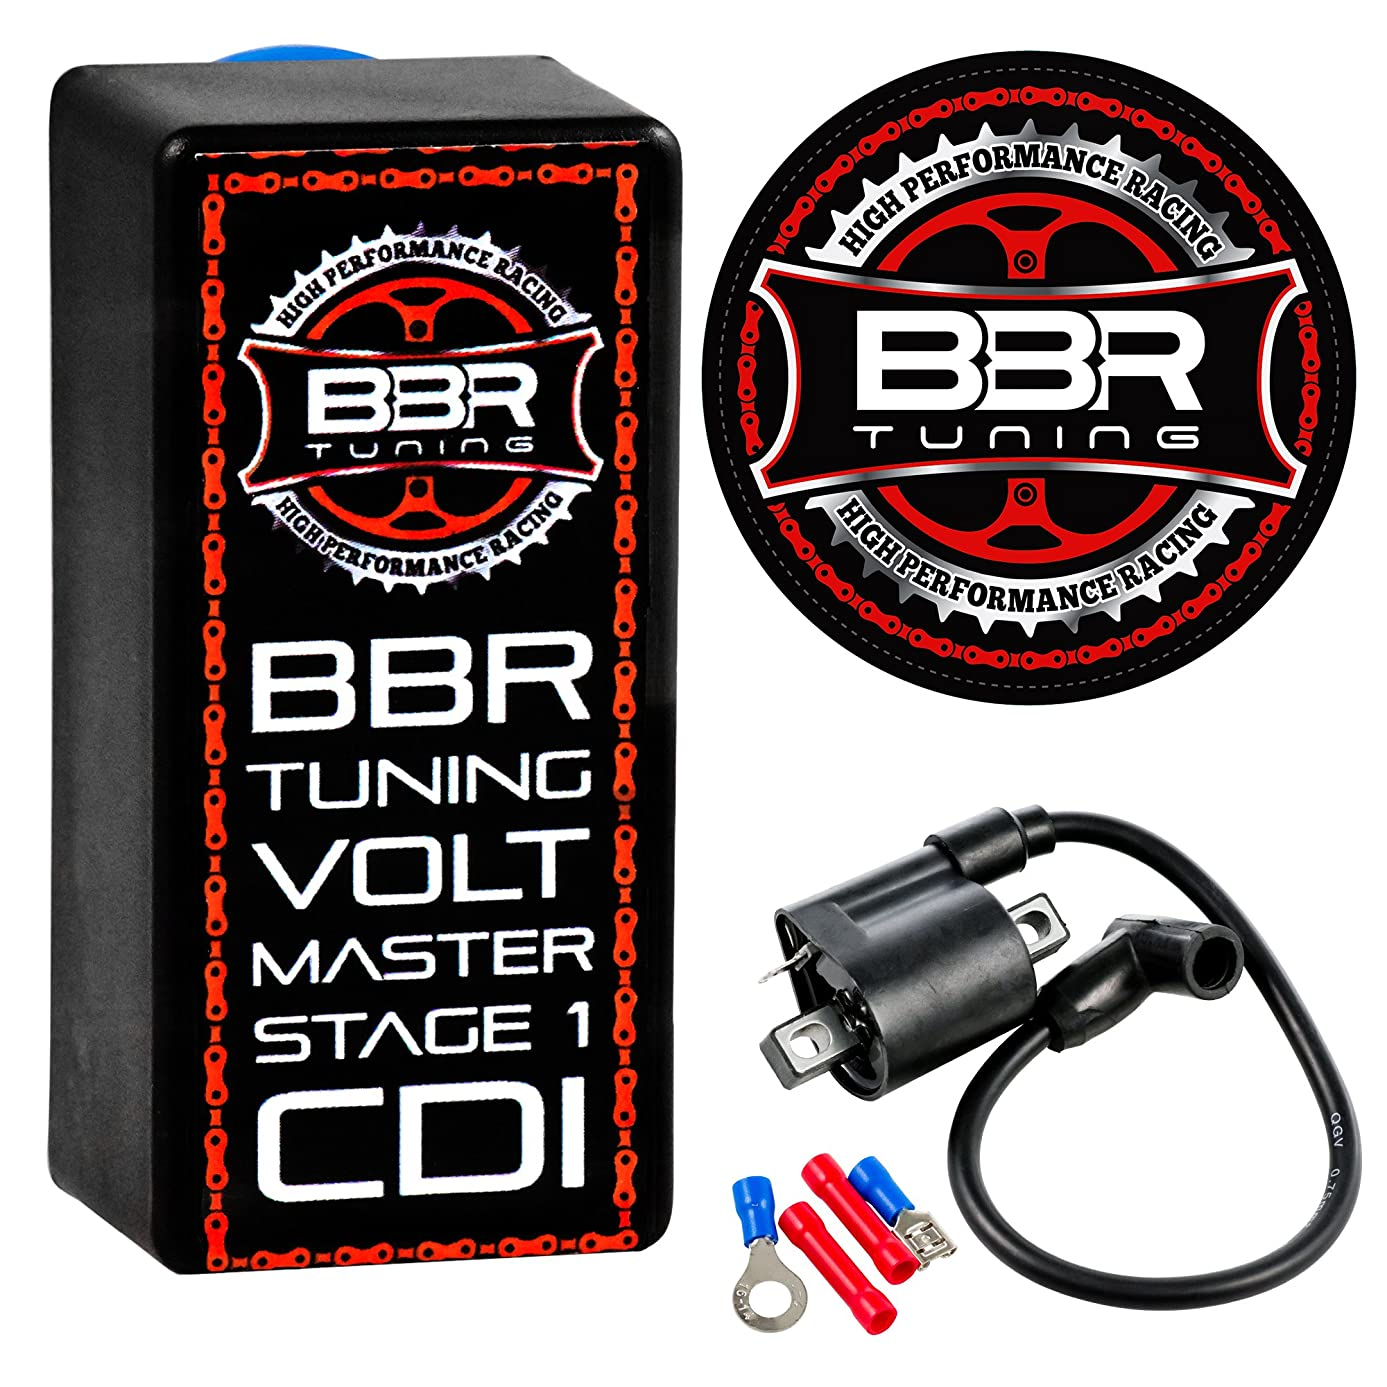 BBR Tuning Volt Master High Performance Motorized Bicycle Racing CDI Electrical Ignition Coil (Volt CDI Stage 1)